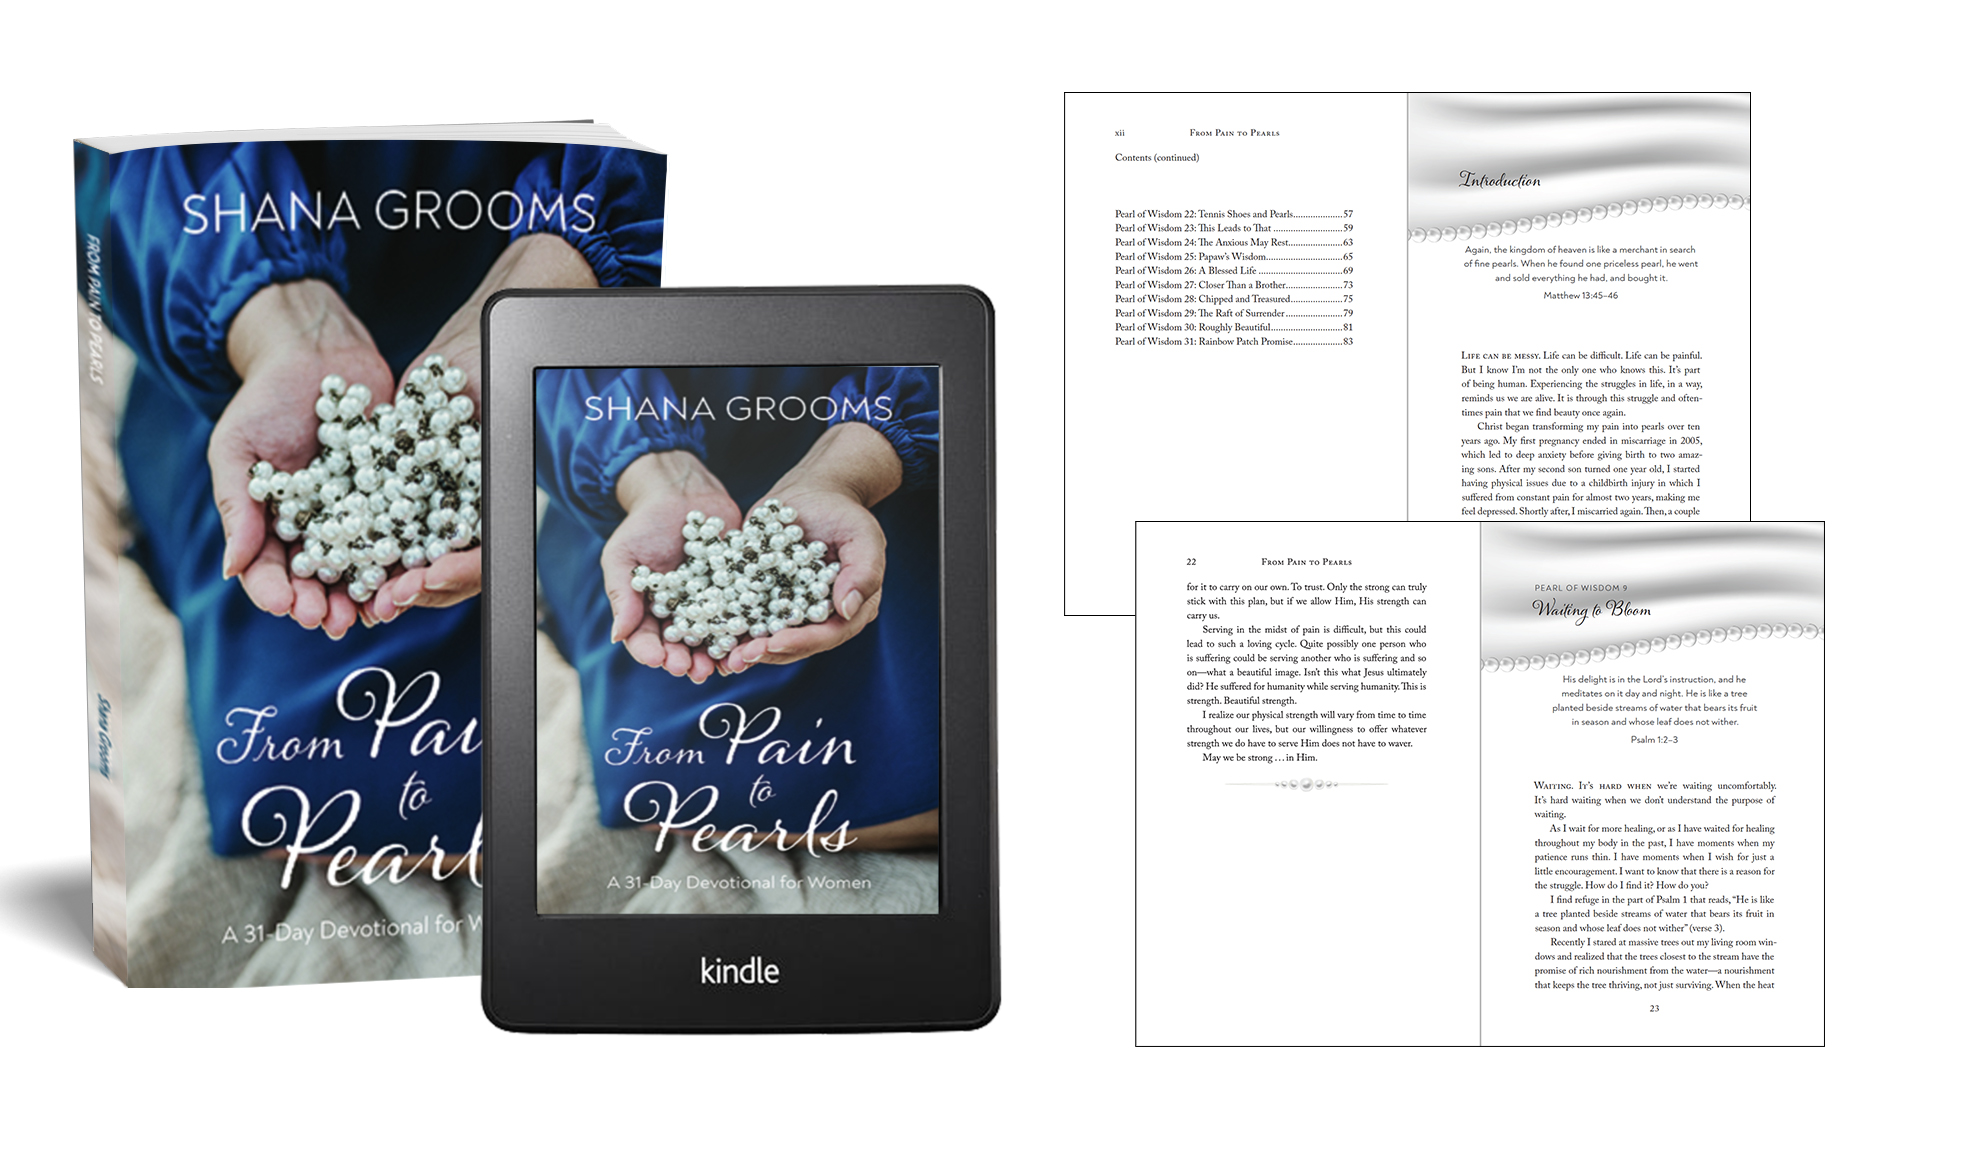 Book Design – From Pain to Pearls